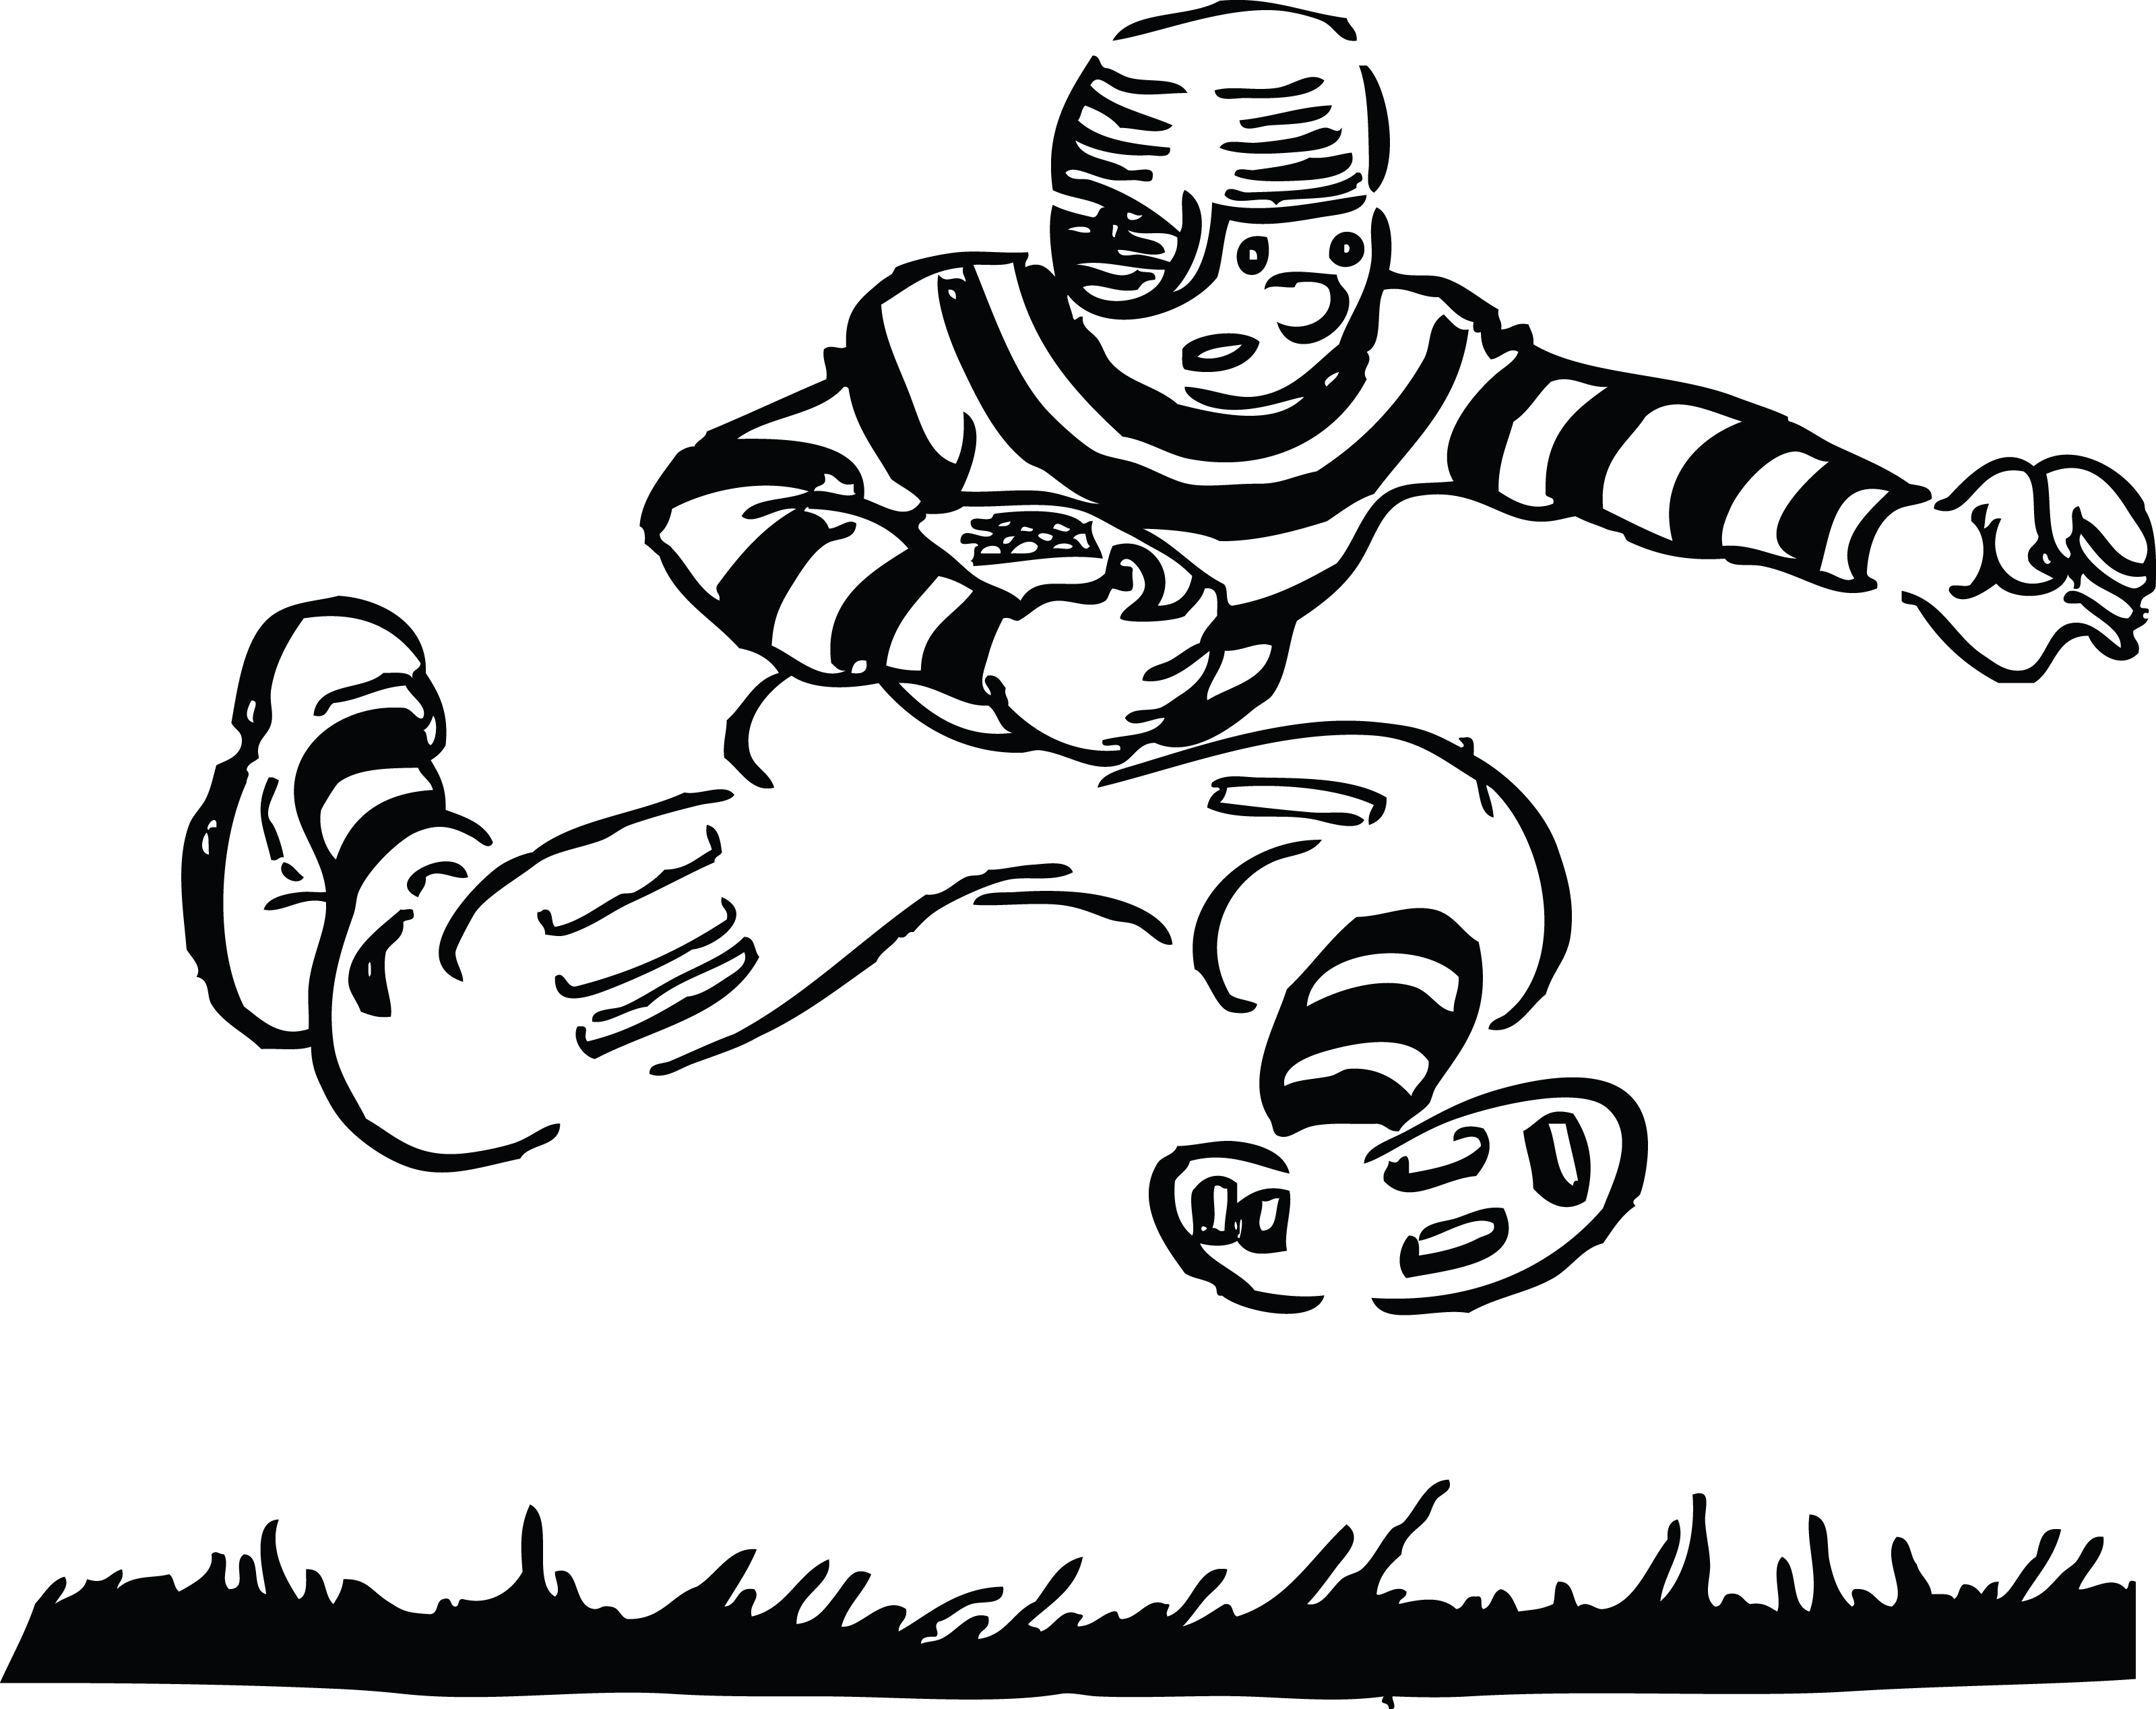 Football Clip Art Black And White Outline